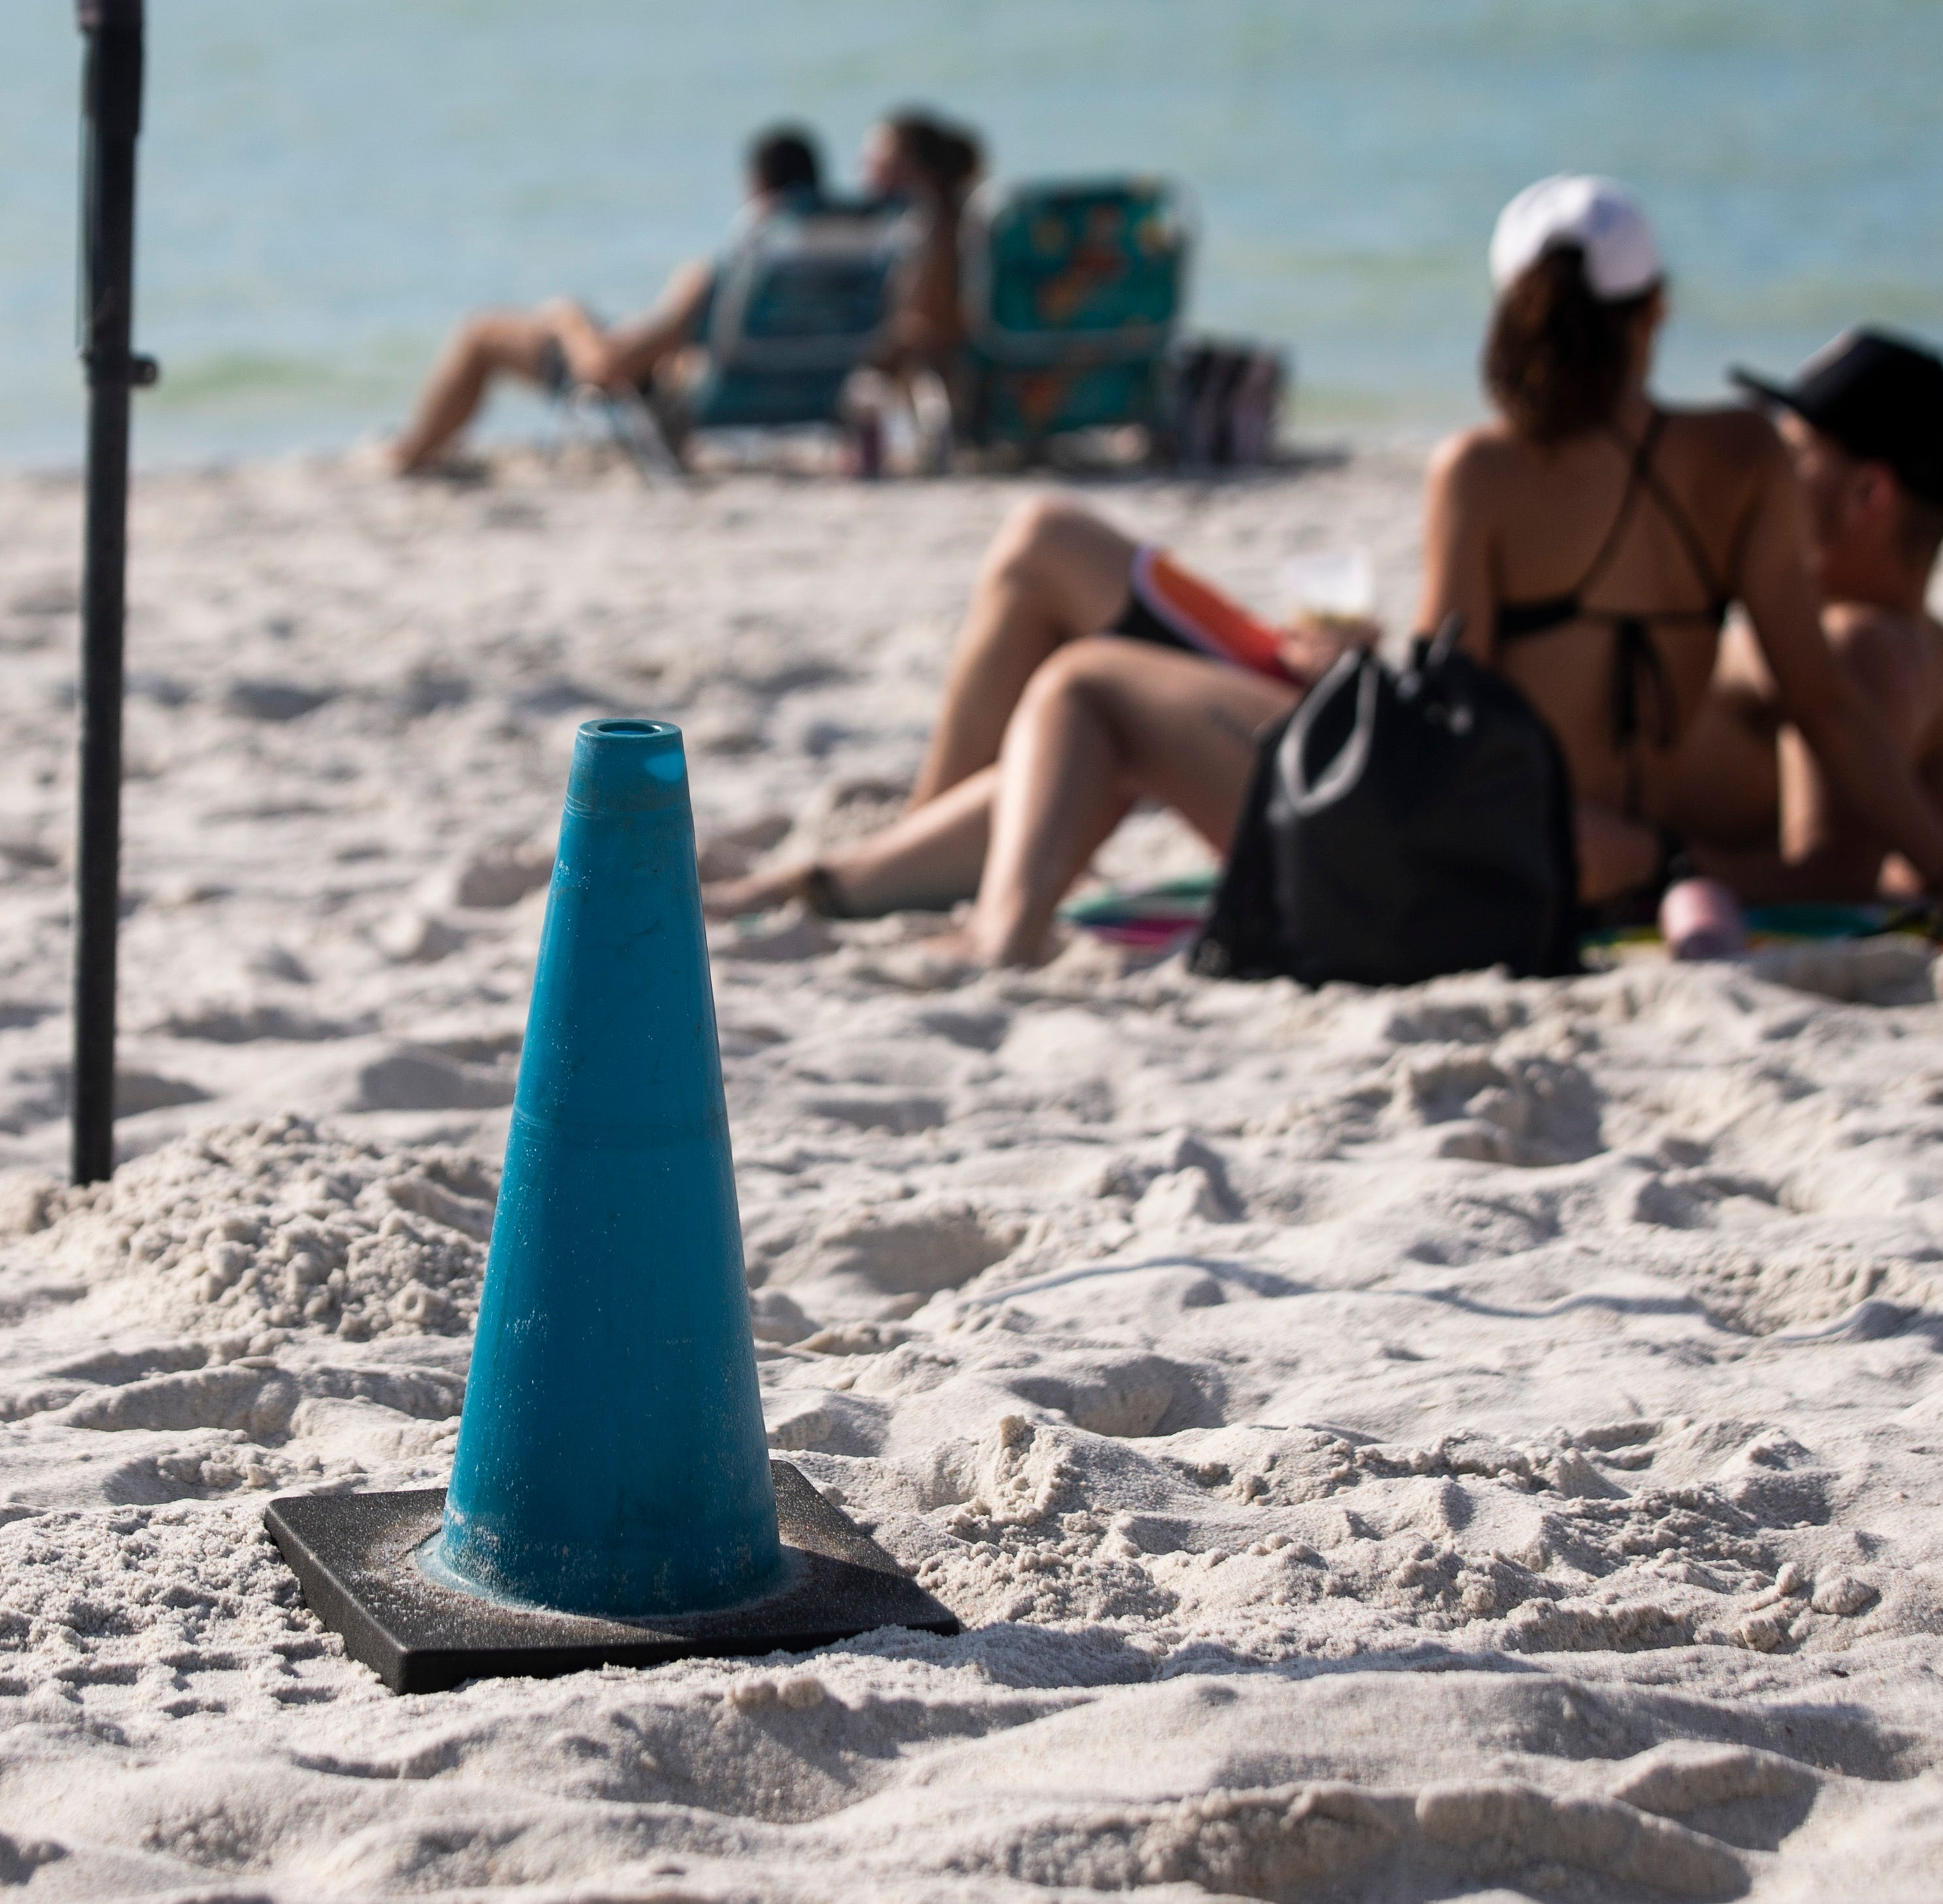 Naples earns top spot in Gallup national well-being survey